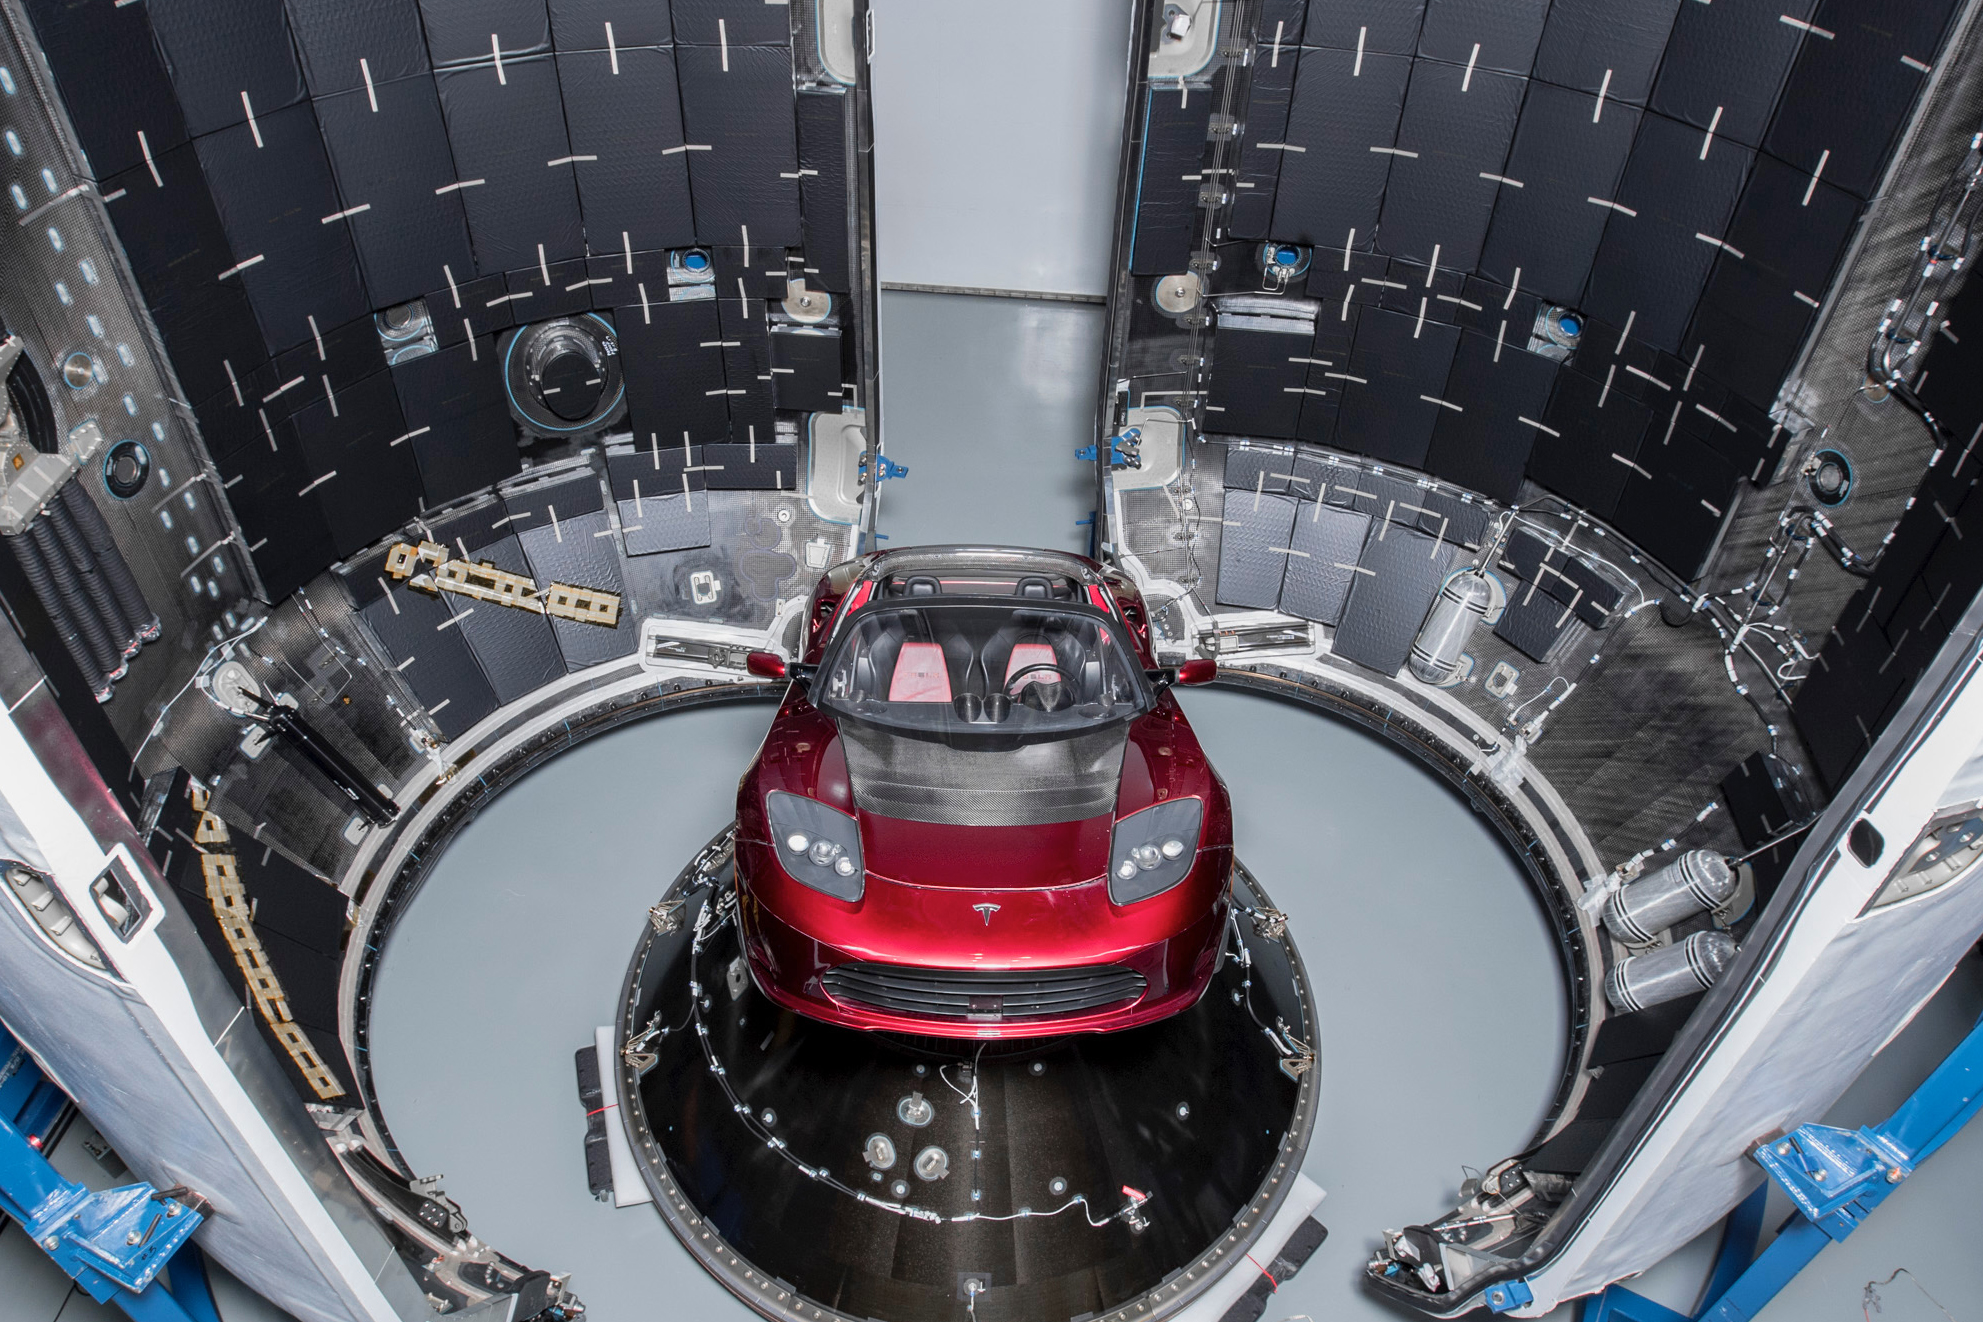 Musk Tesla The Elon Musk Is Launching A Tesla Into Space Here S How Spacex Will